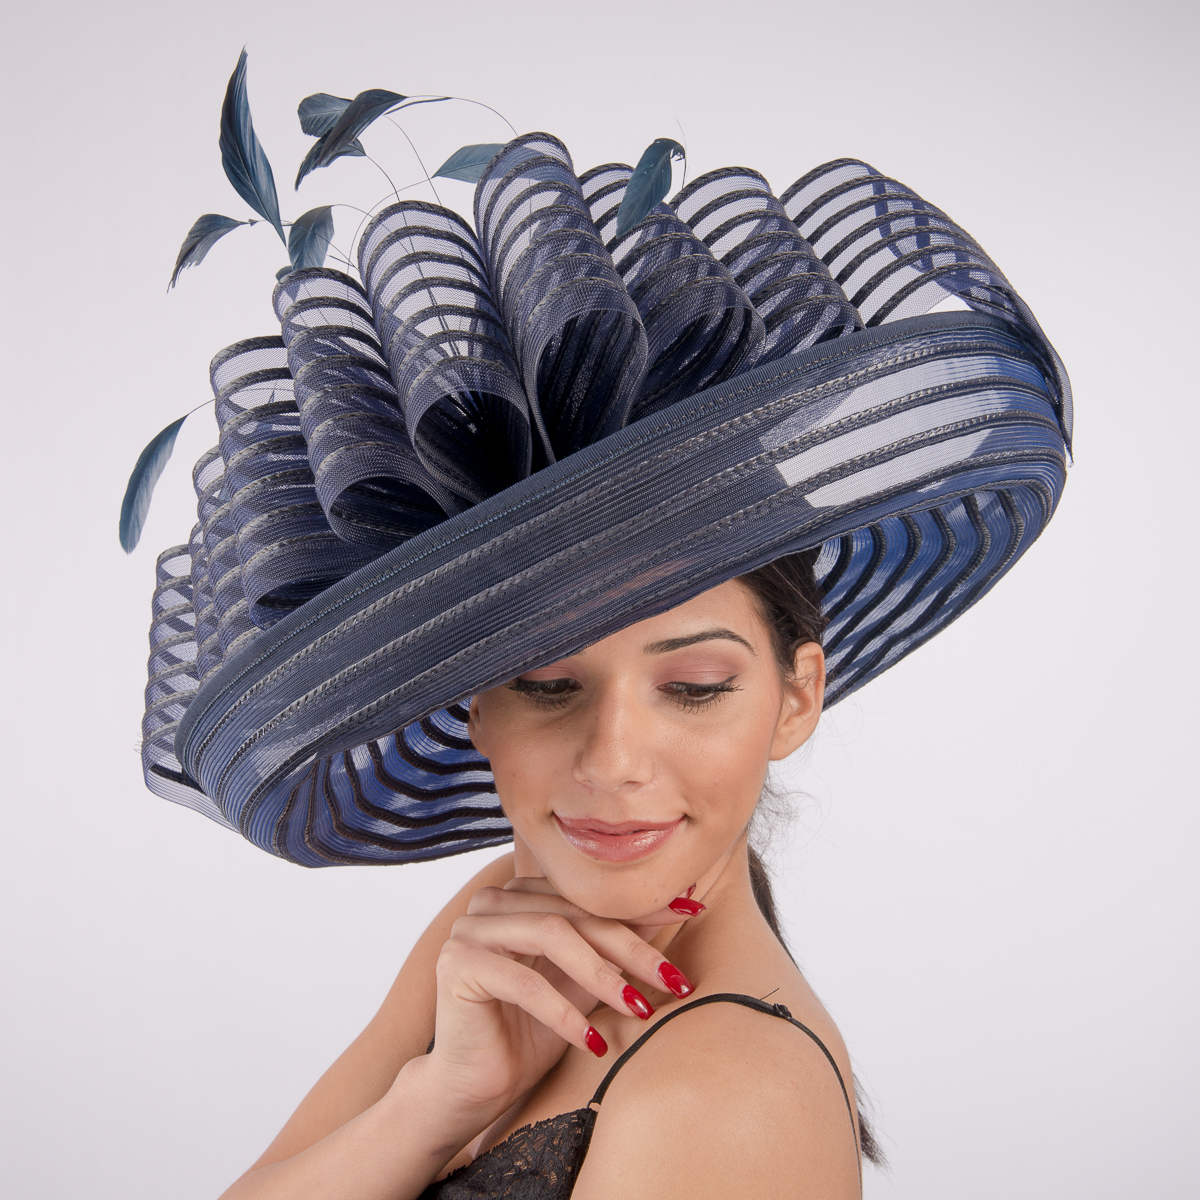 Navy Large Pleated Profile Crinoline Hats AJ425S NV Sun